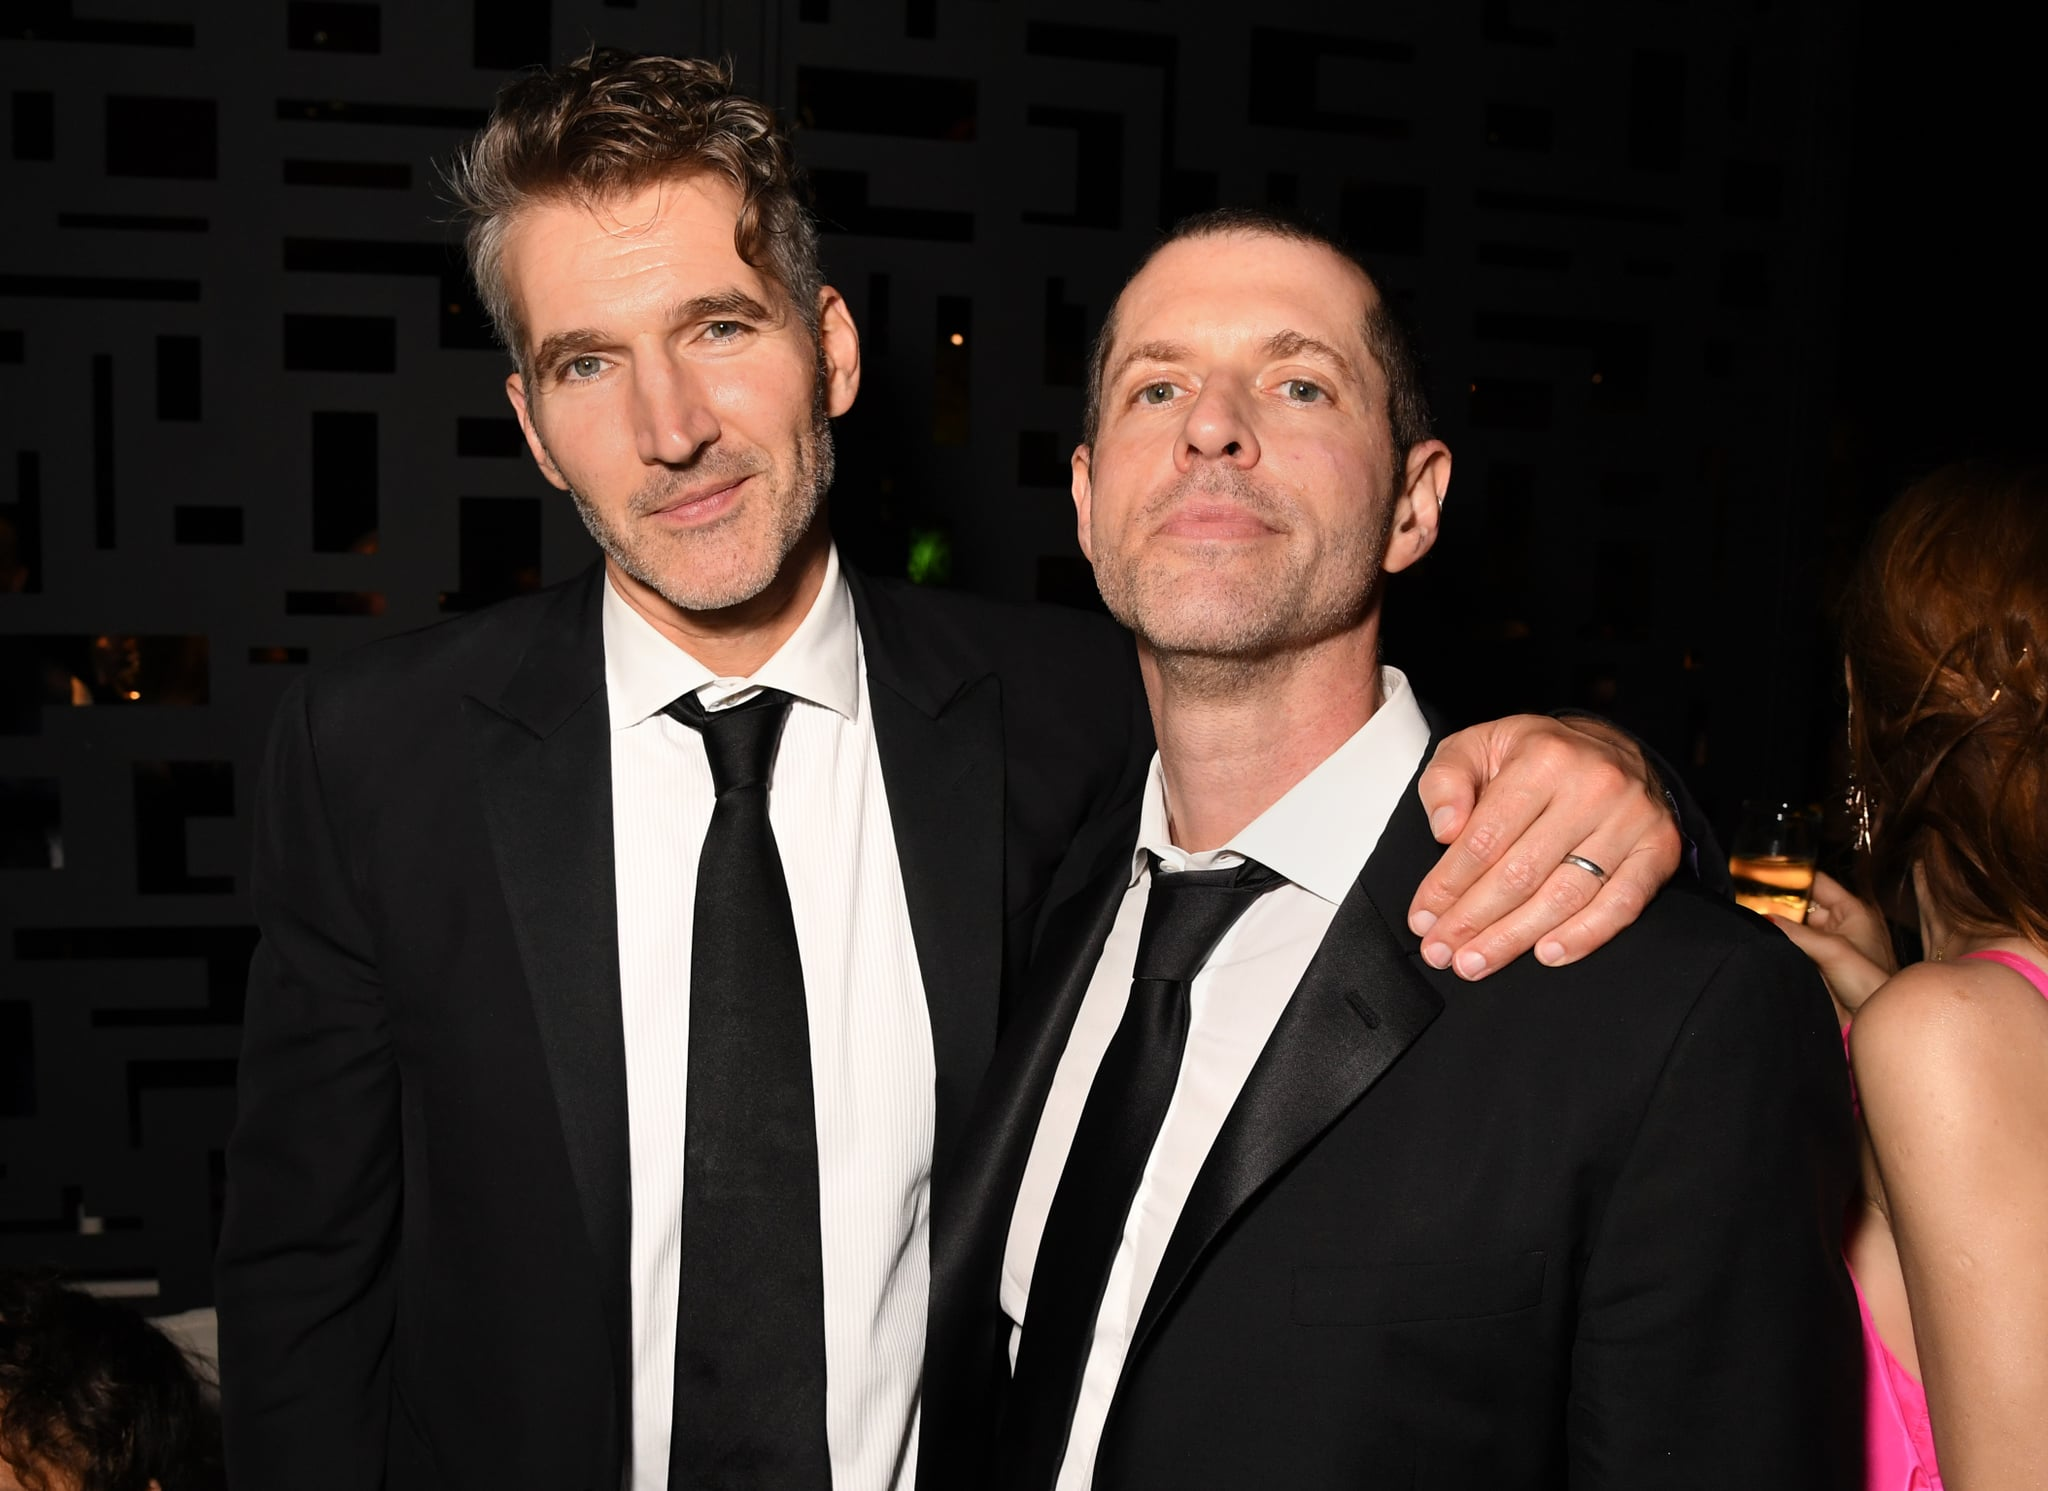 LOS ANGELES, CALIFORNIA - SEPTEMBER 22: (L-R) David Benioff and D.B. Weiss attend HBO's Official 2019 Emmy After Party on September 22, 2019 in Los Angeles, California. (Photo by Jeff Kravitz/FilmMagic for HBO)